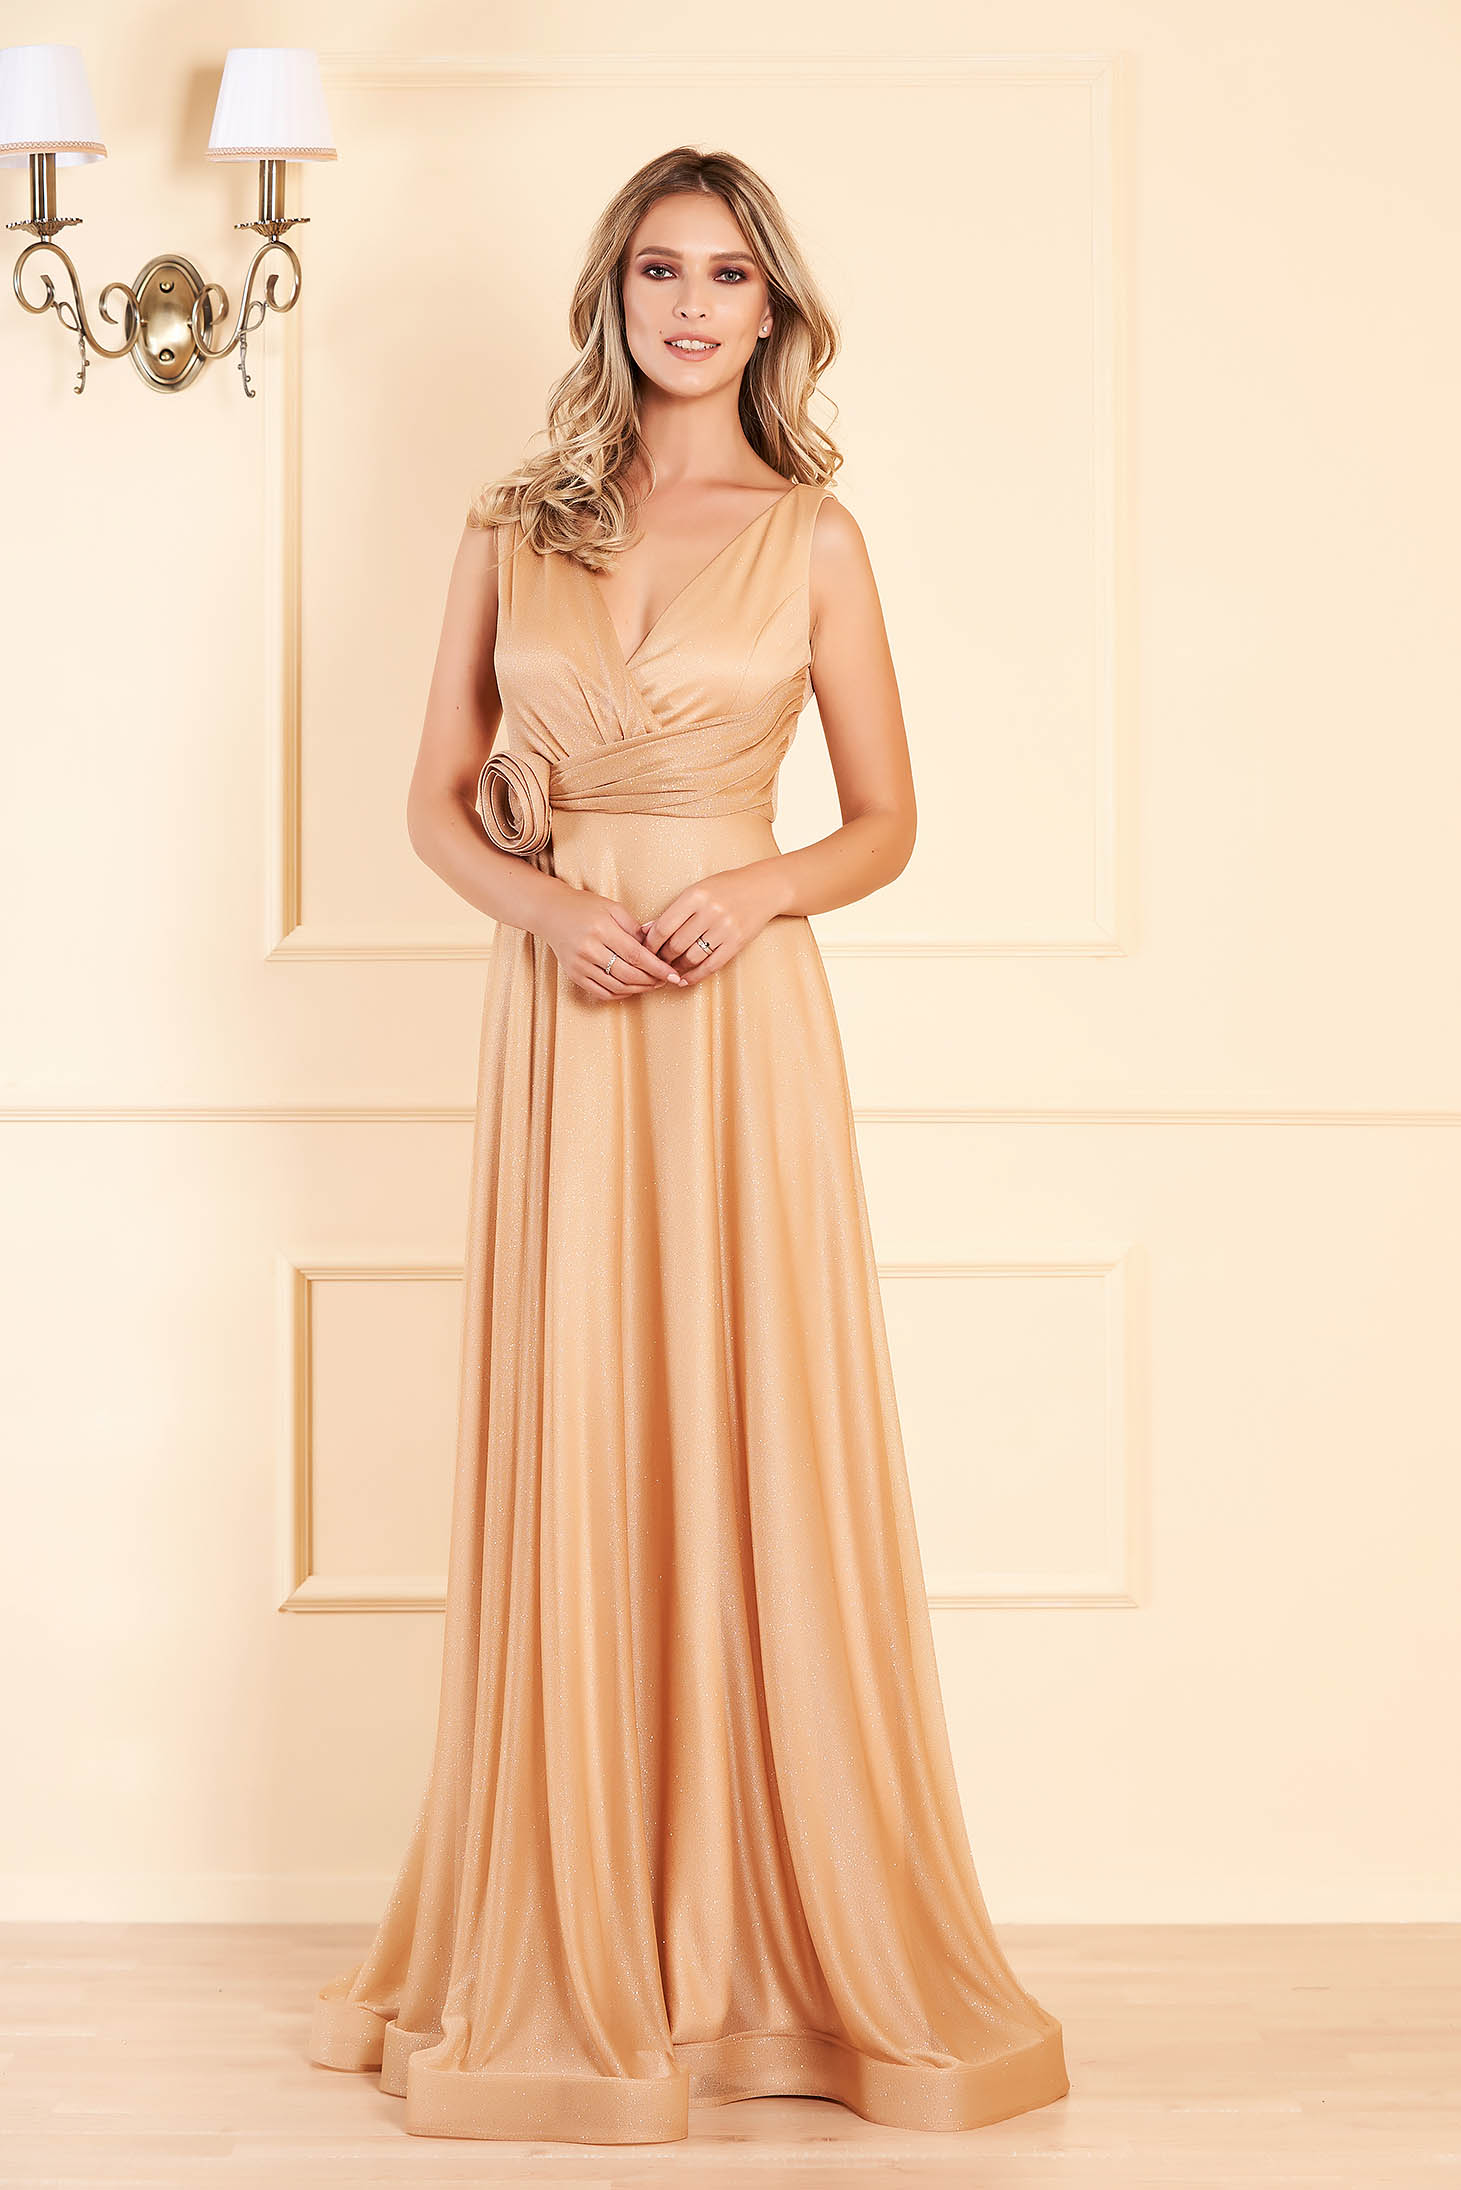 Gold long occasional cloche dress with push-up cups with deep cleavage